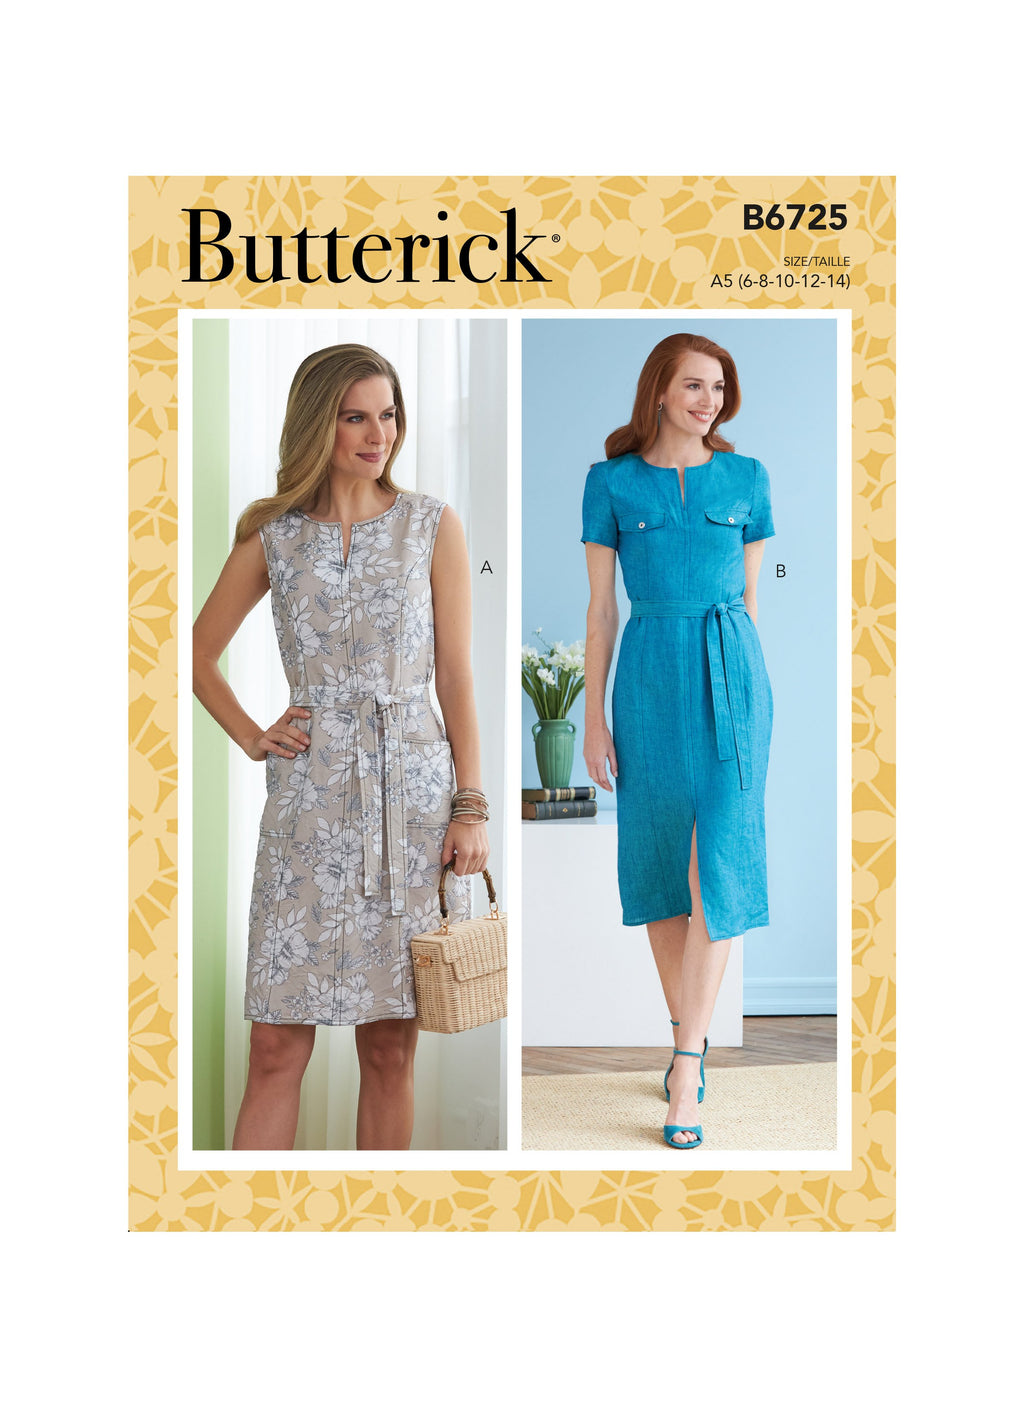 Butterick Sewing Pattern 6725 Misses' Dresses